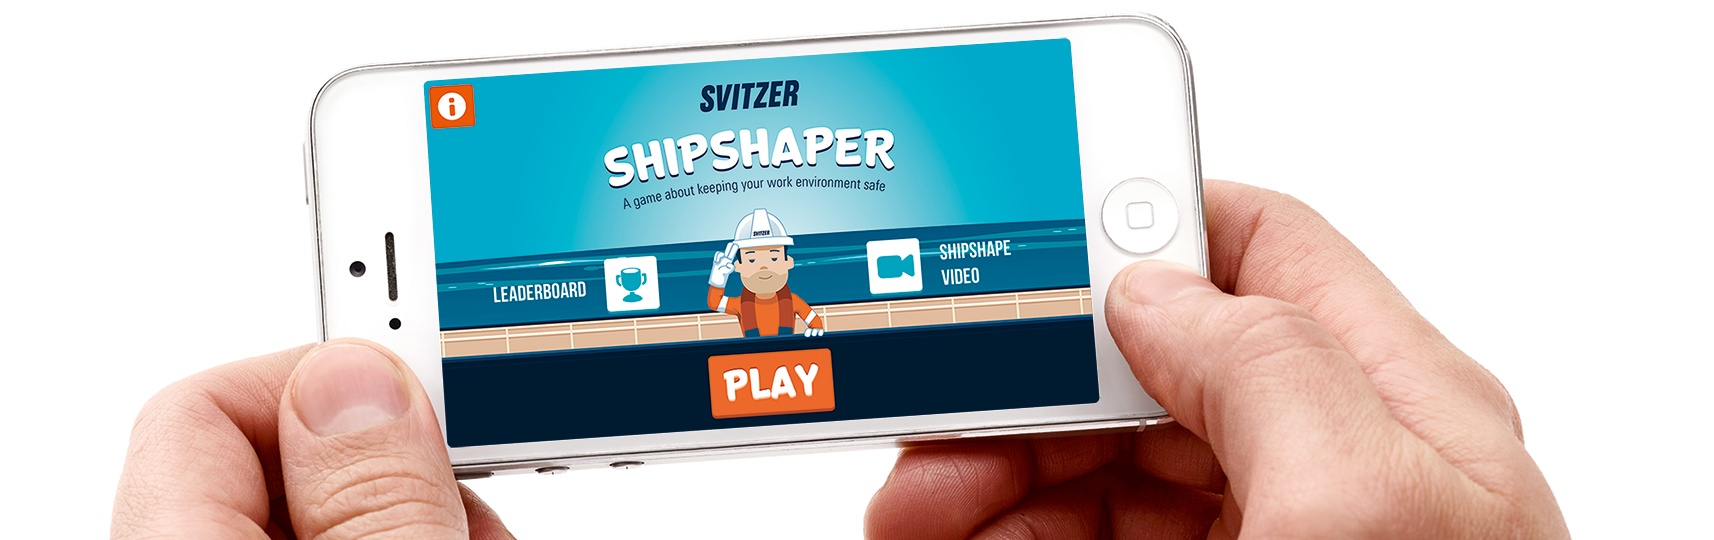 CBC Svitzer Safety Campaigns App